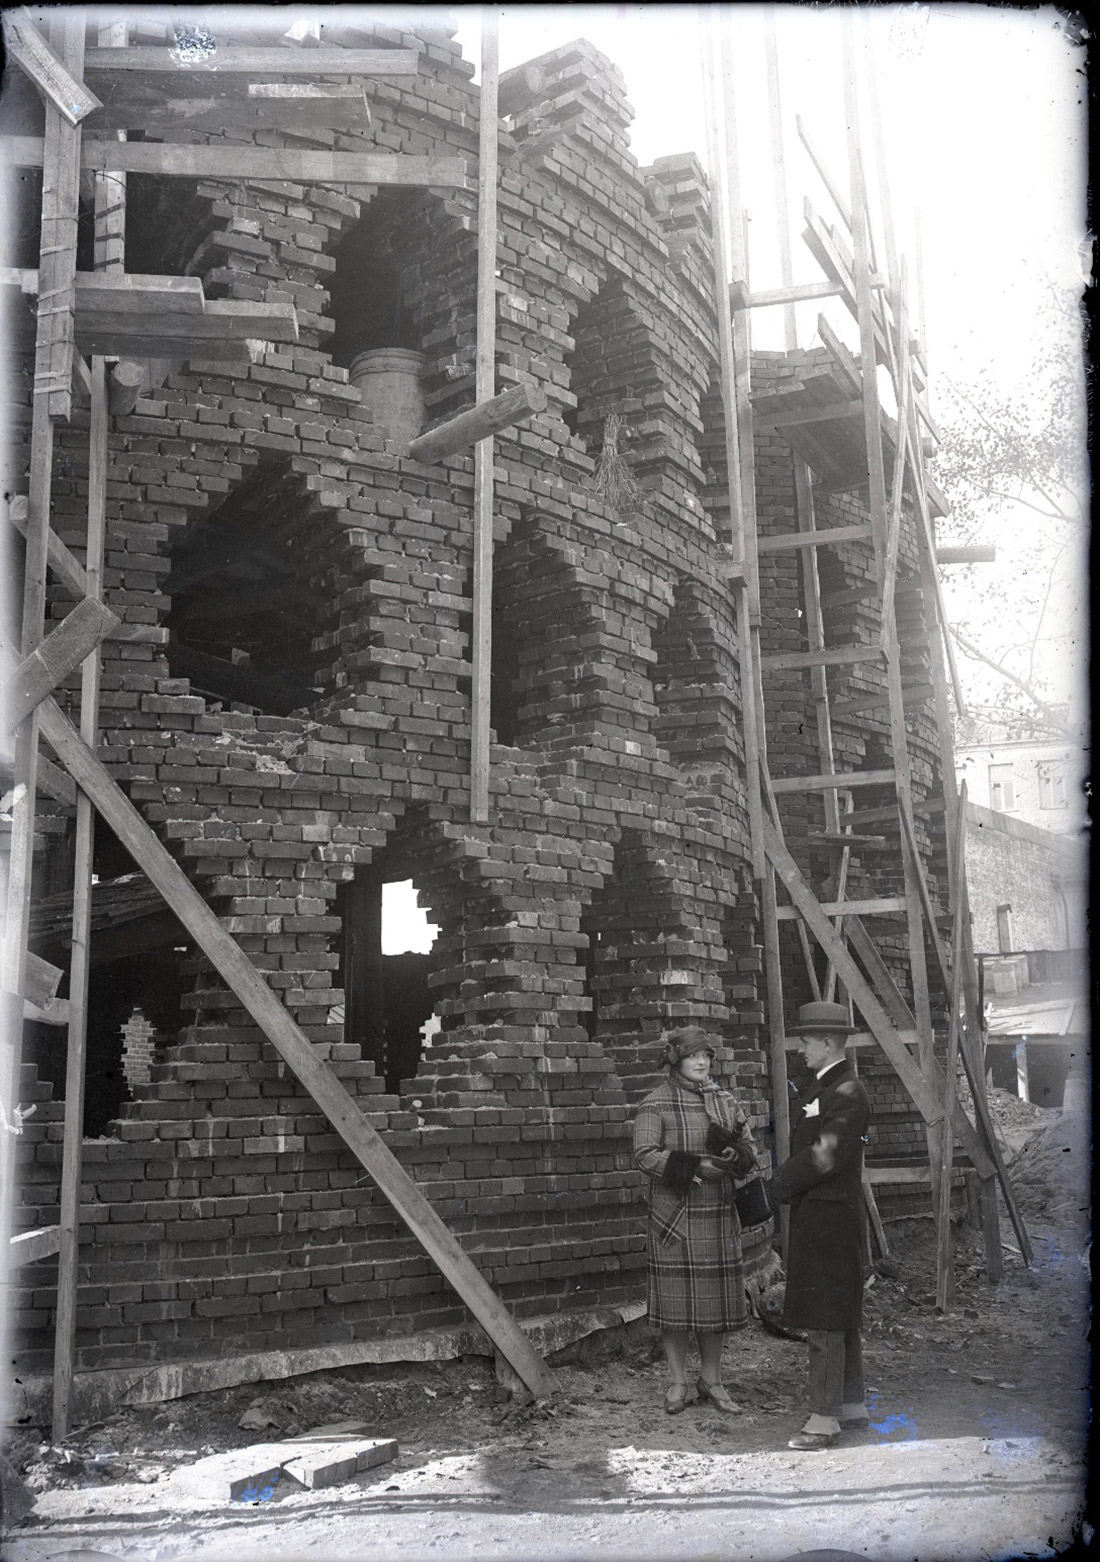 Black and white photograph of a cylindrical brick structure with hexagonal windows under scaffolding, being constructed